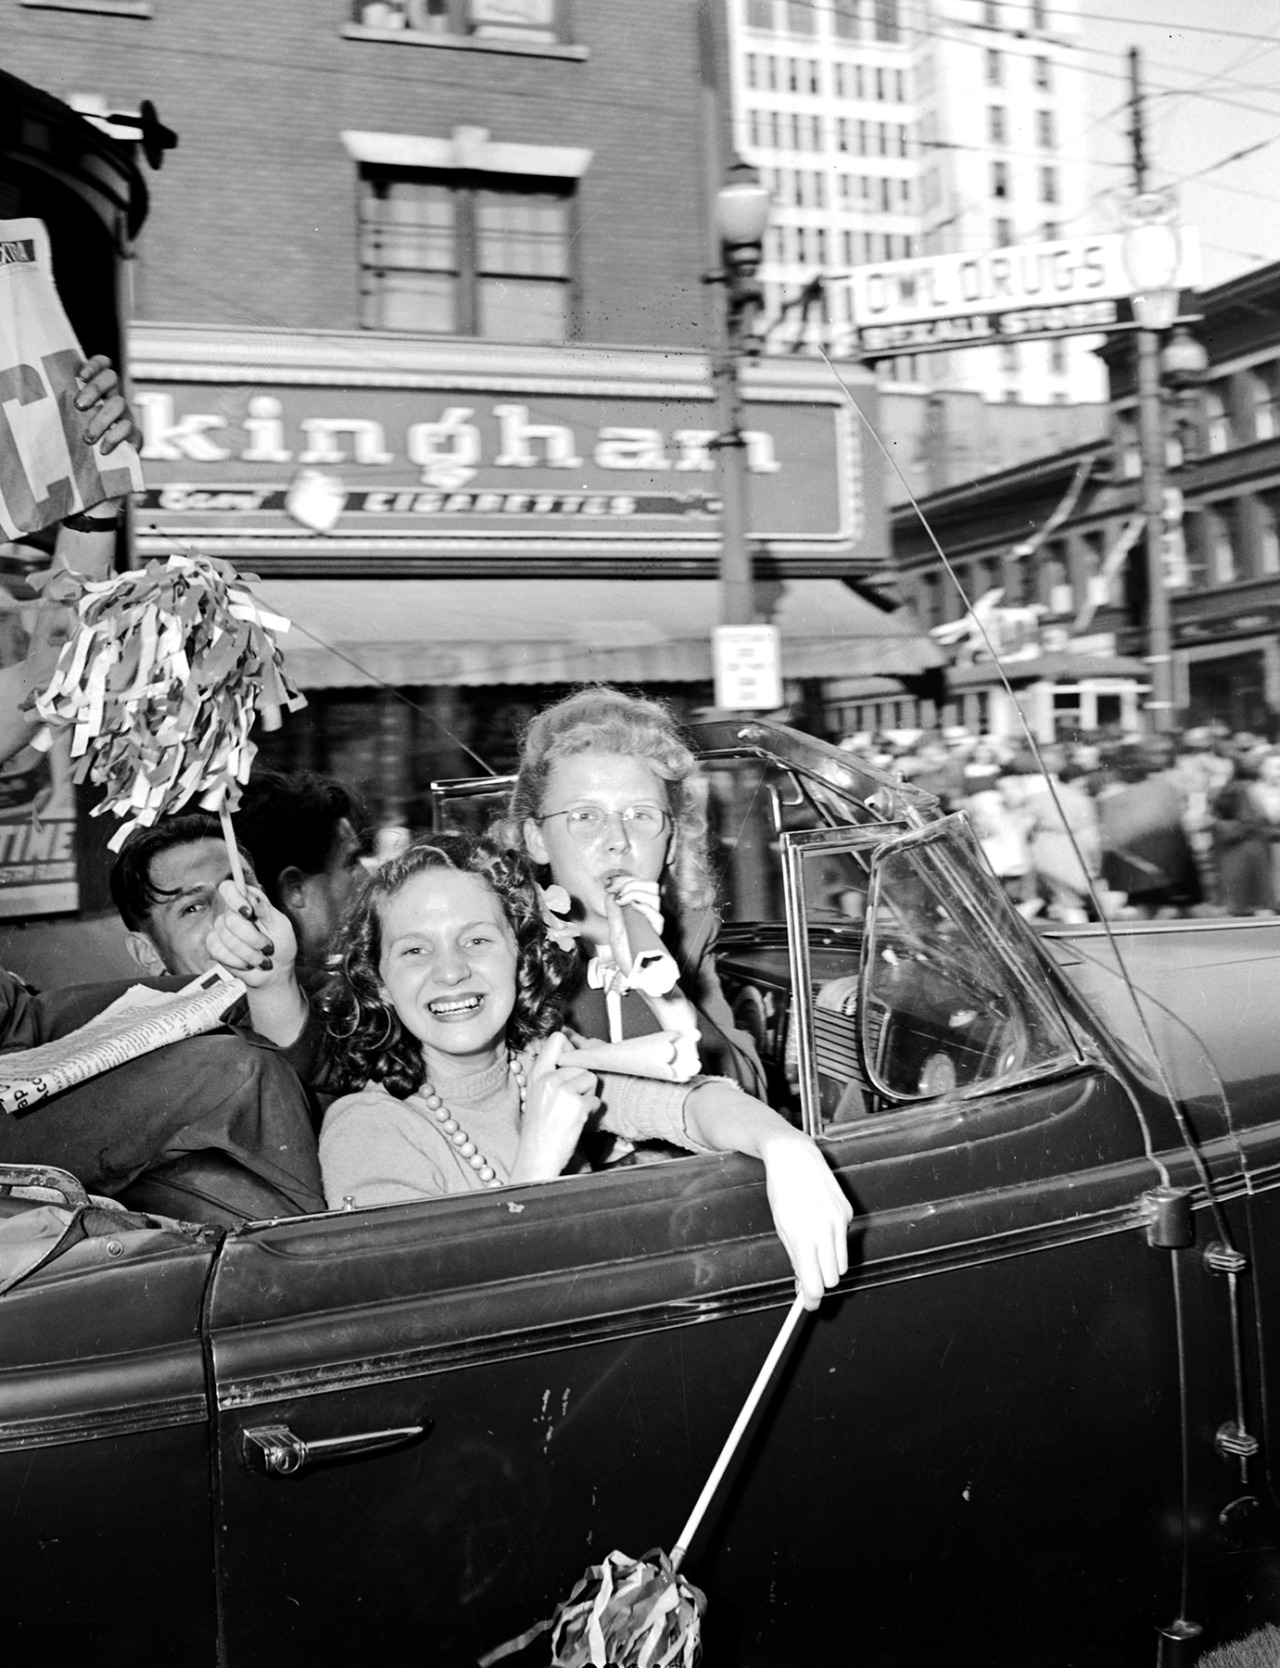 V-J Day, Tuesday 14 August 1945 Source: Photo by Don Coltman, City of Vancouver Archives #586-3962